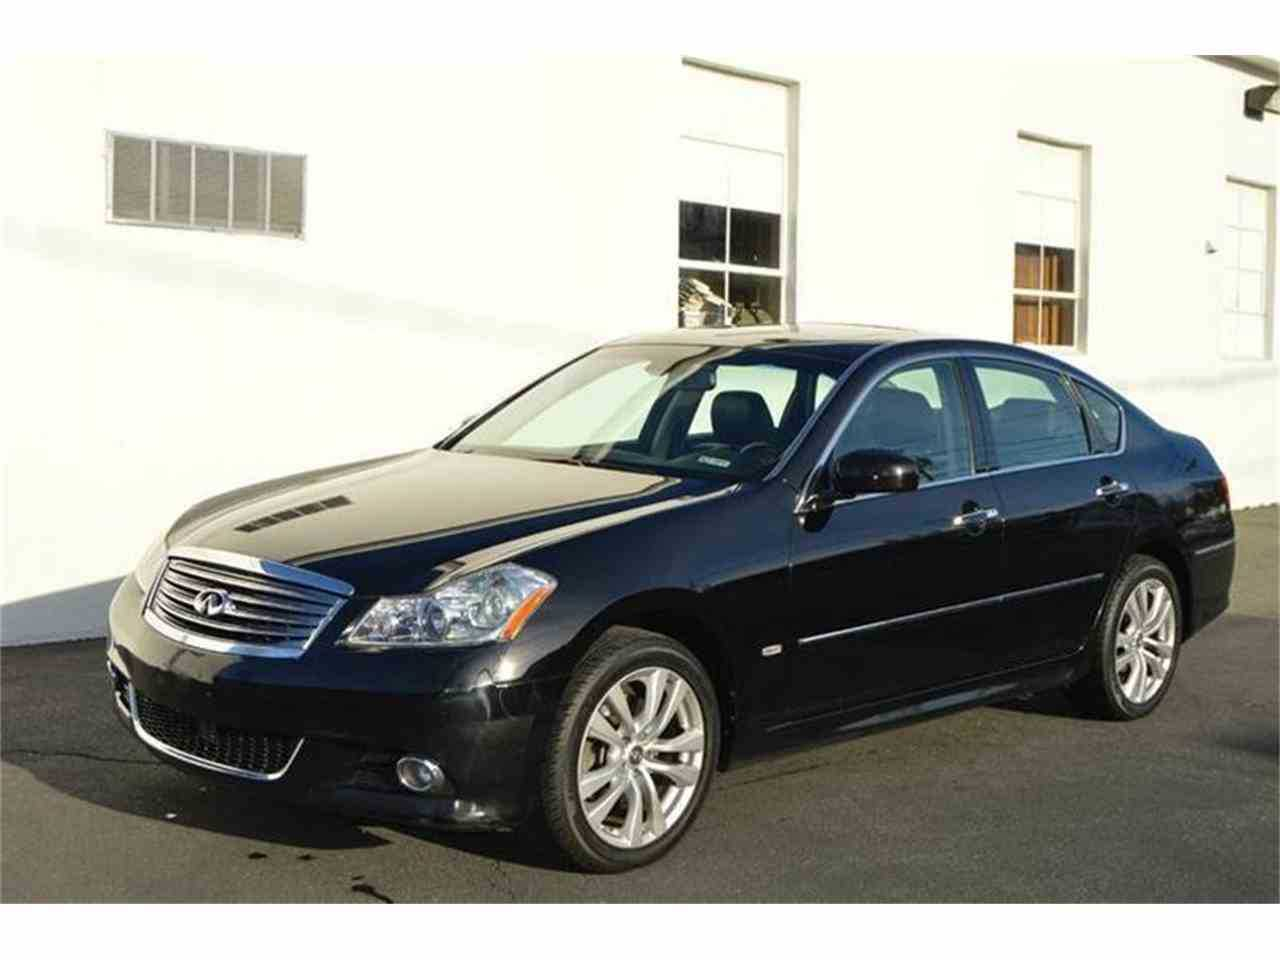 2008 infiniti m35 for sale in springfield ma jnkay01f78m653931. Black Bedroom Furniture Sets. Home Design Ideas